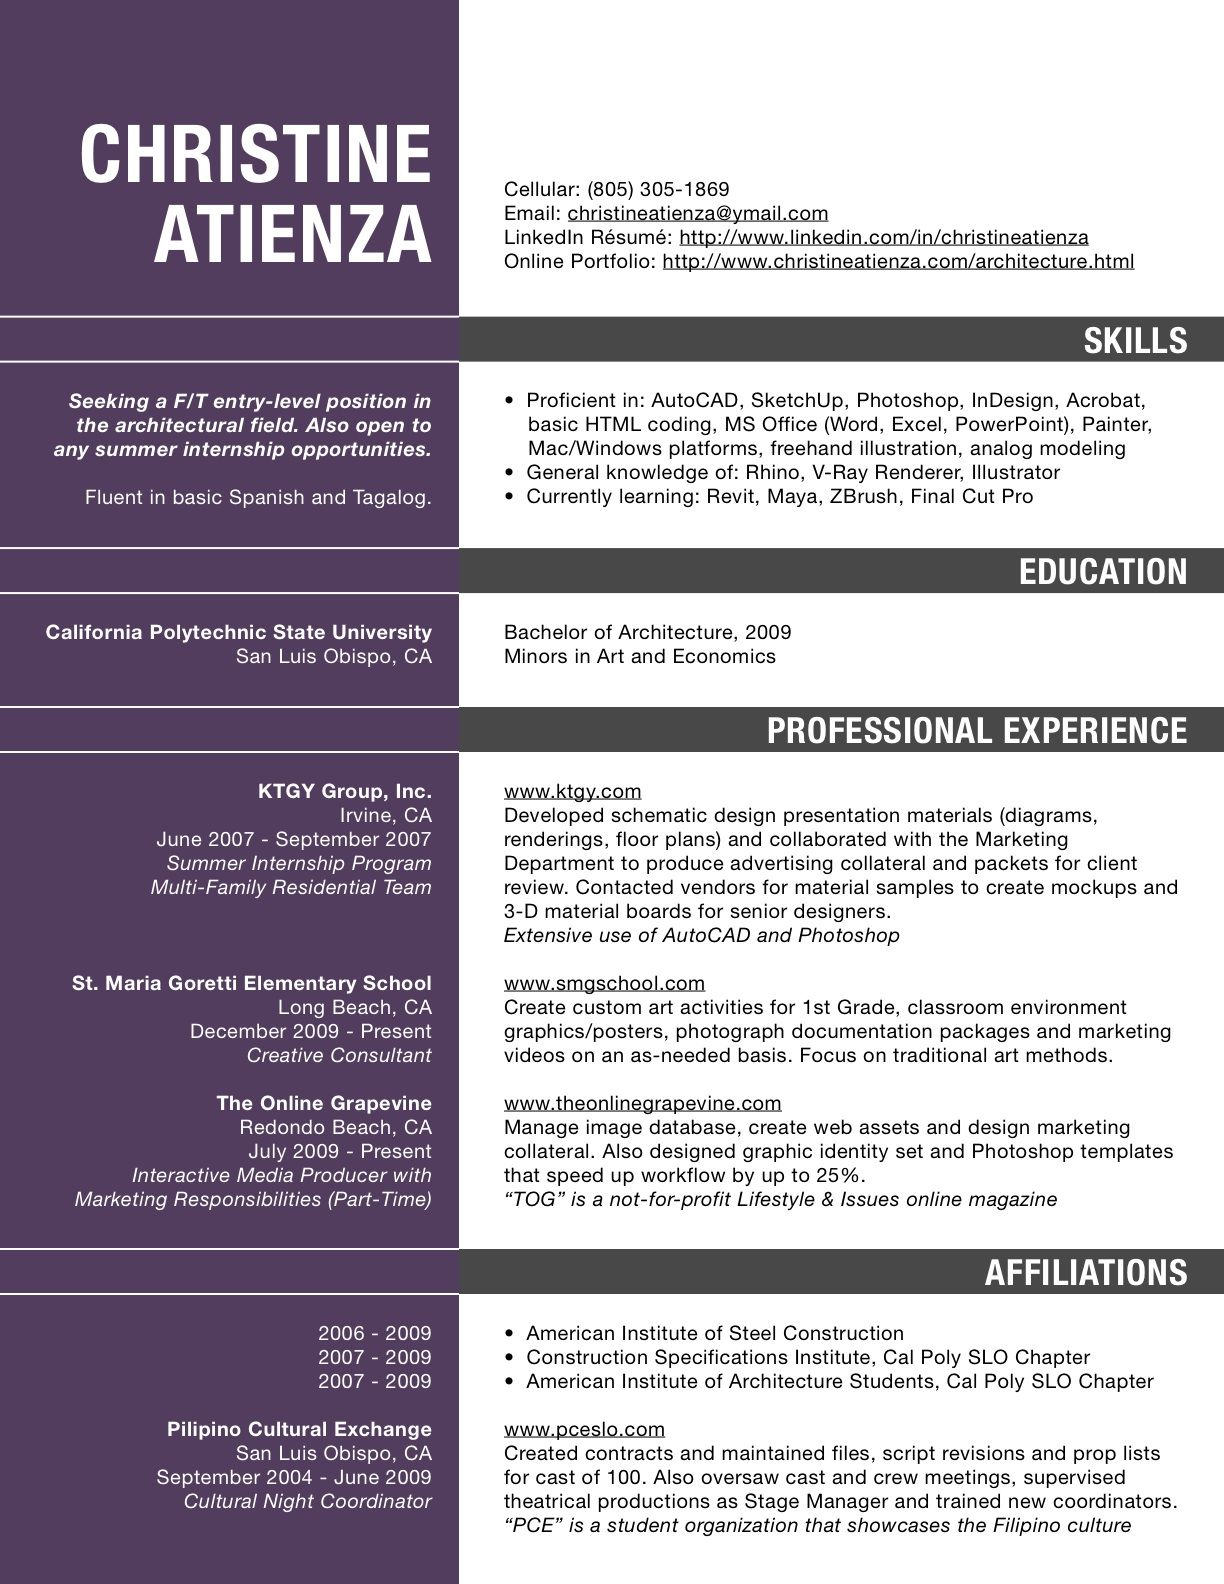 architecture resume pdf Resume for Architects Professionals | Resume ...